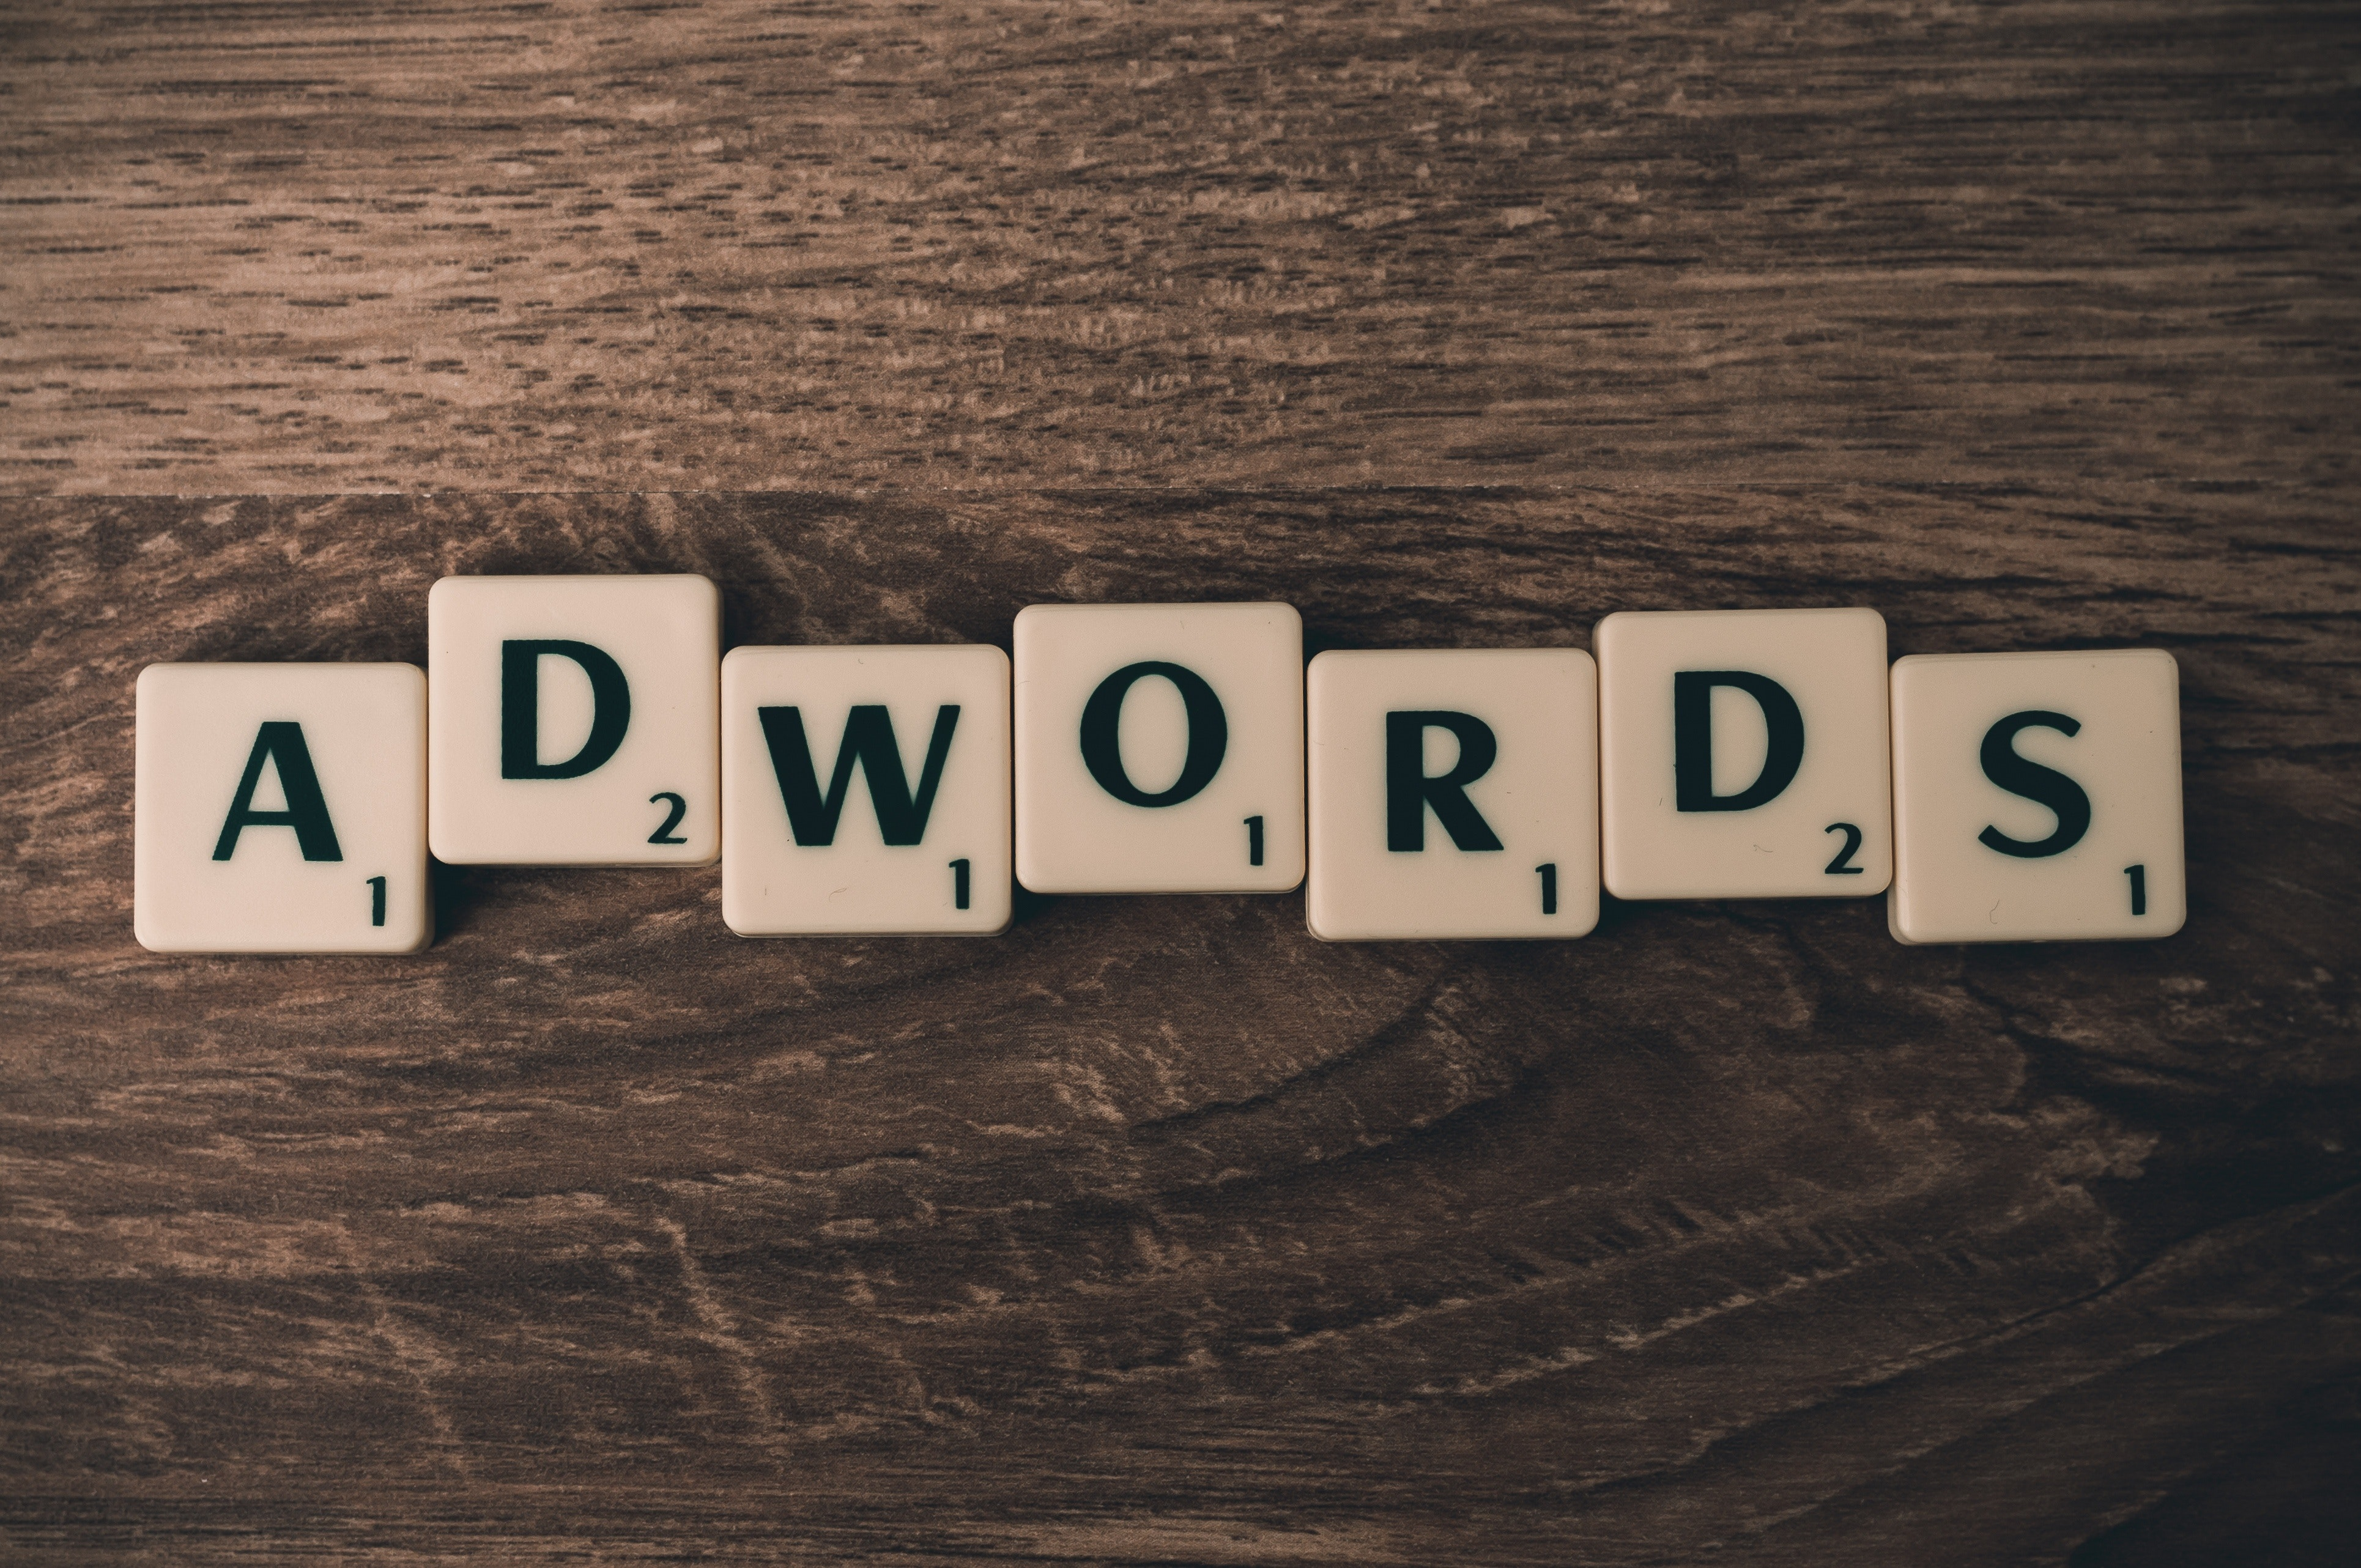 google ads and adwords